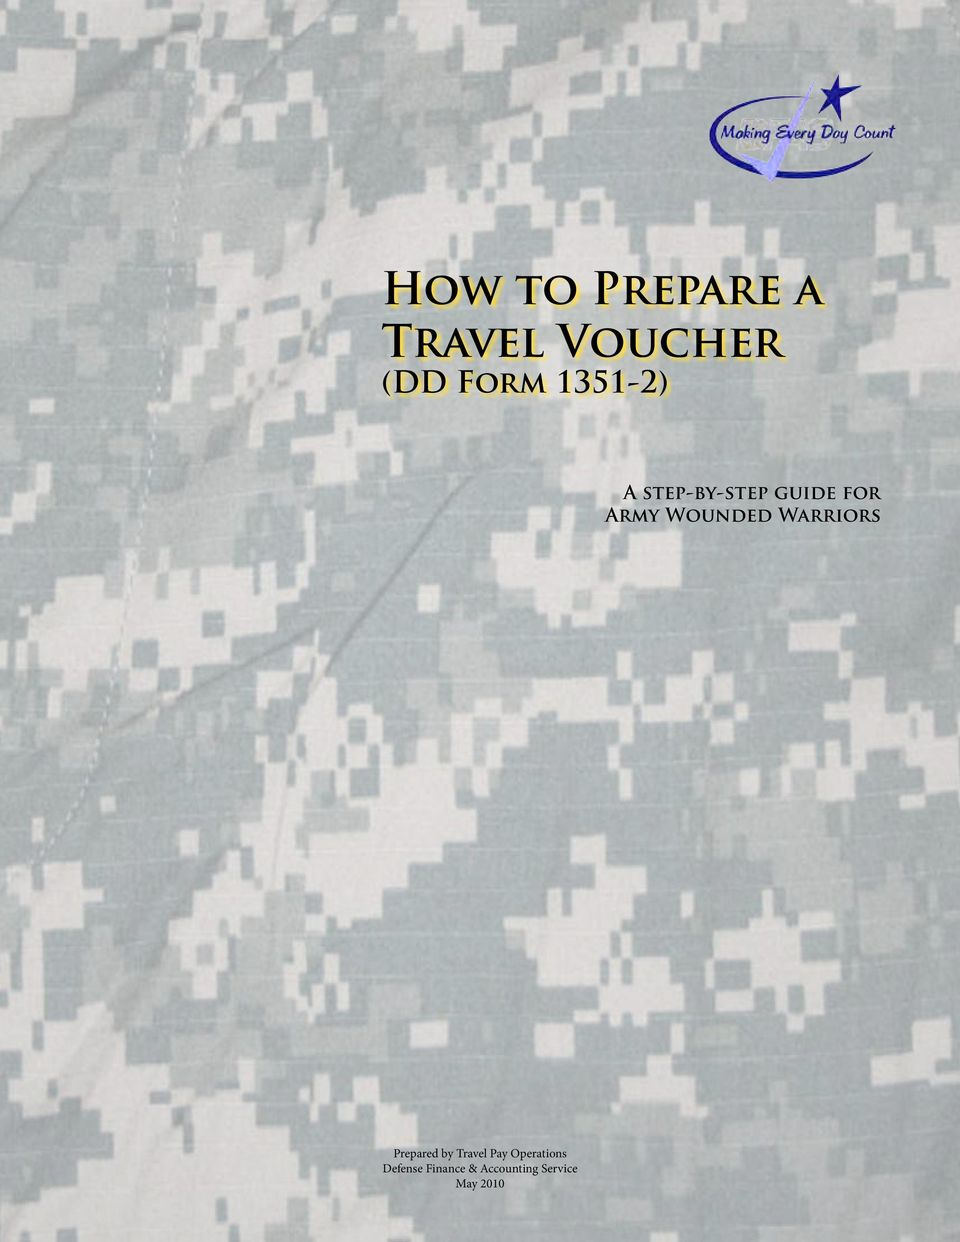 Wounded Warriors Prepared by Travel Pay